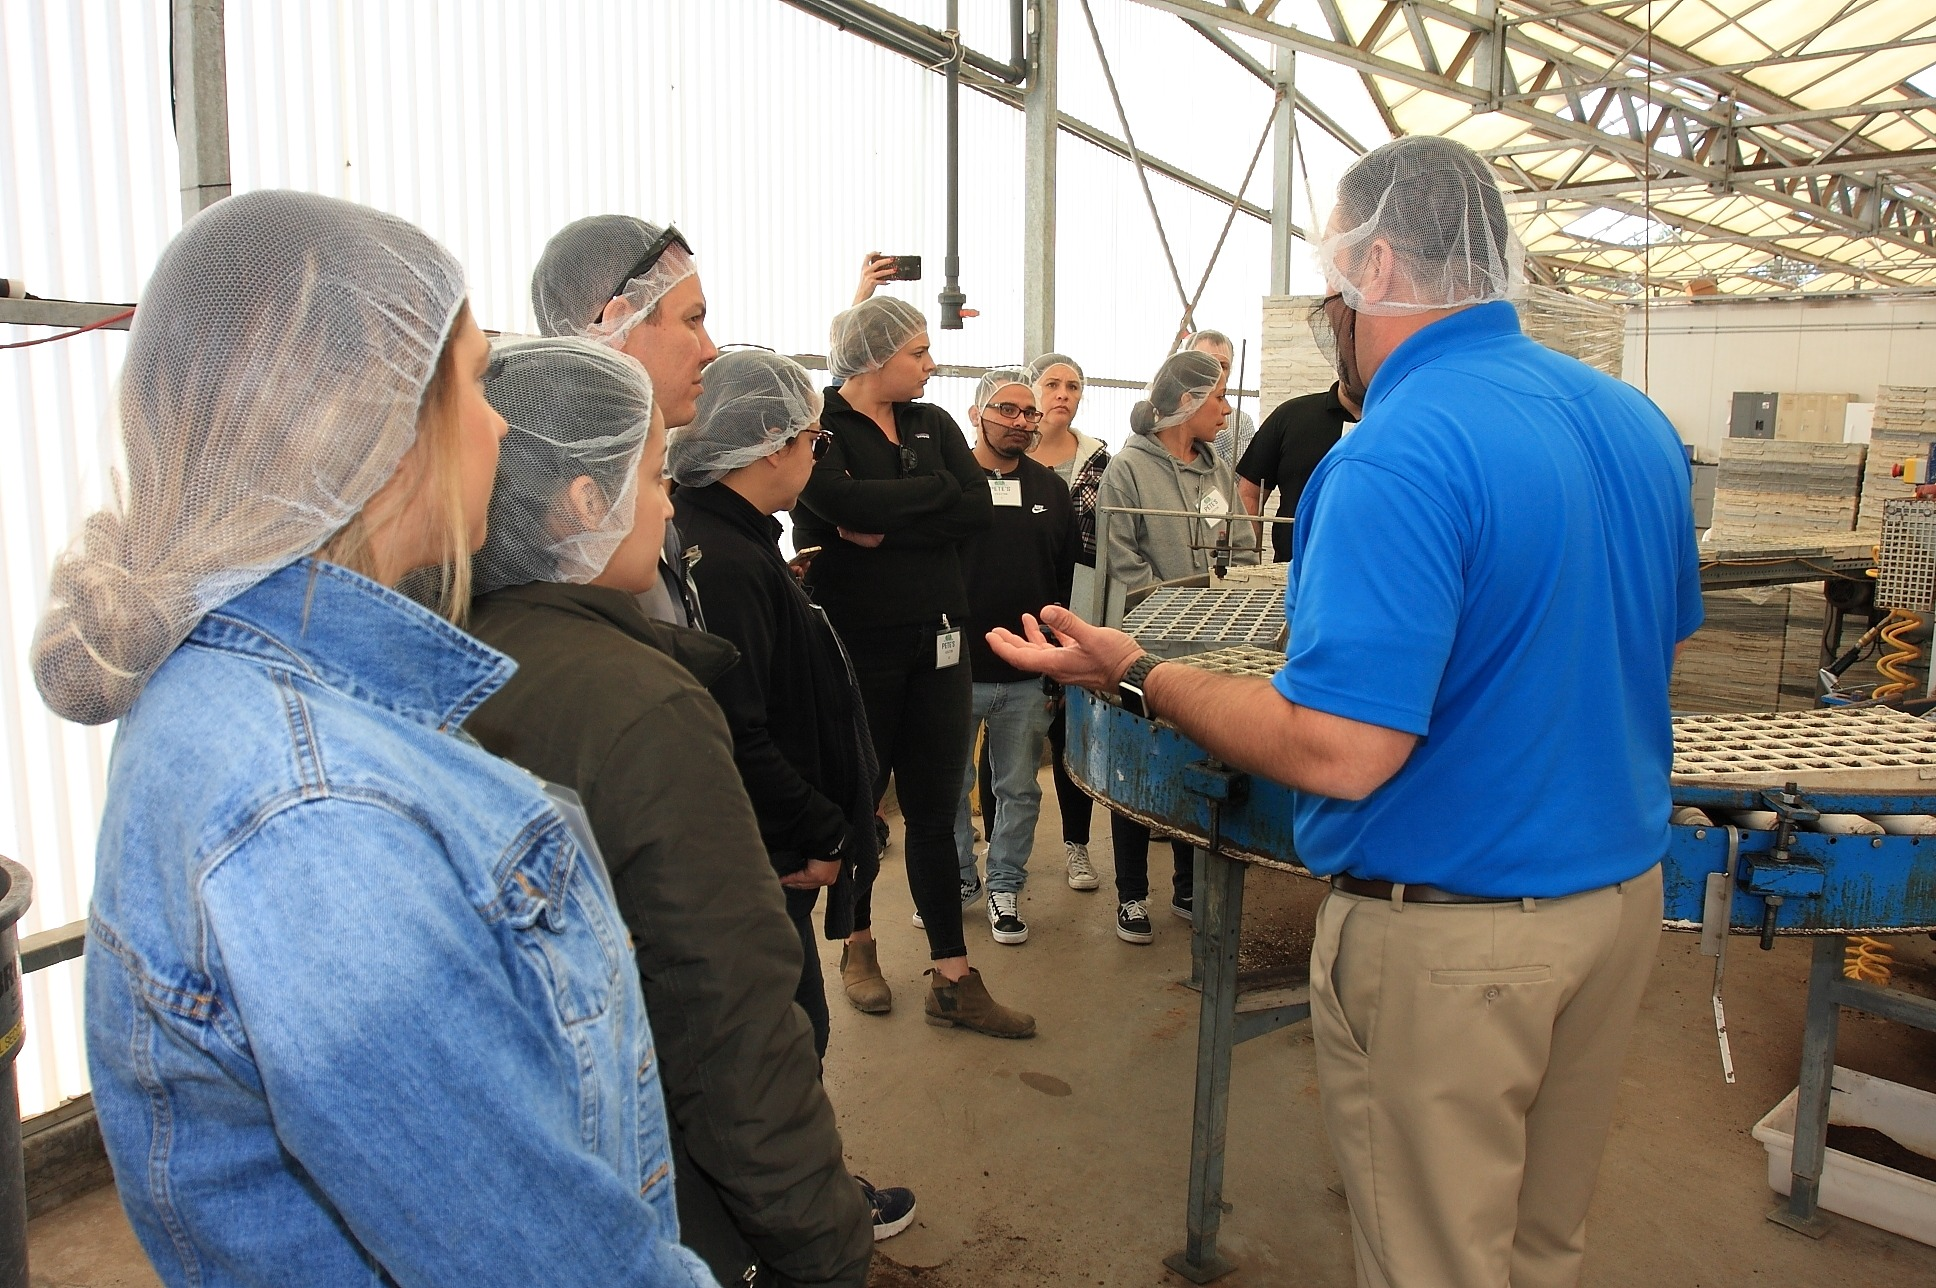 Apprentices Jessica Garica, Esmeralda Mejia, Jeffrey Fish, Briana Giampaoli, Jose Morales, Julie Boland, and Denise Gonzalez listen to Brian Cook, President of Pete's speak about the seed gemination process.